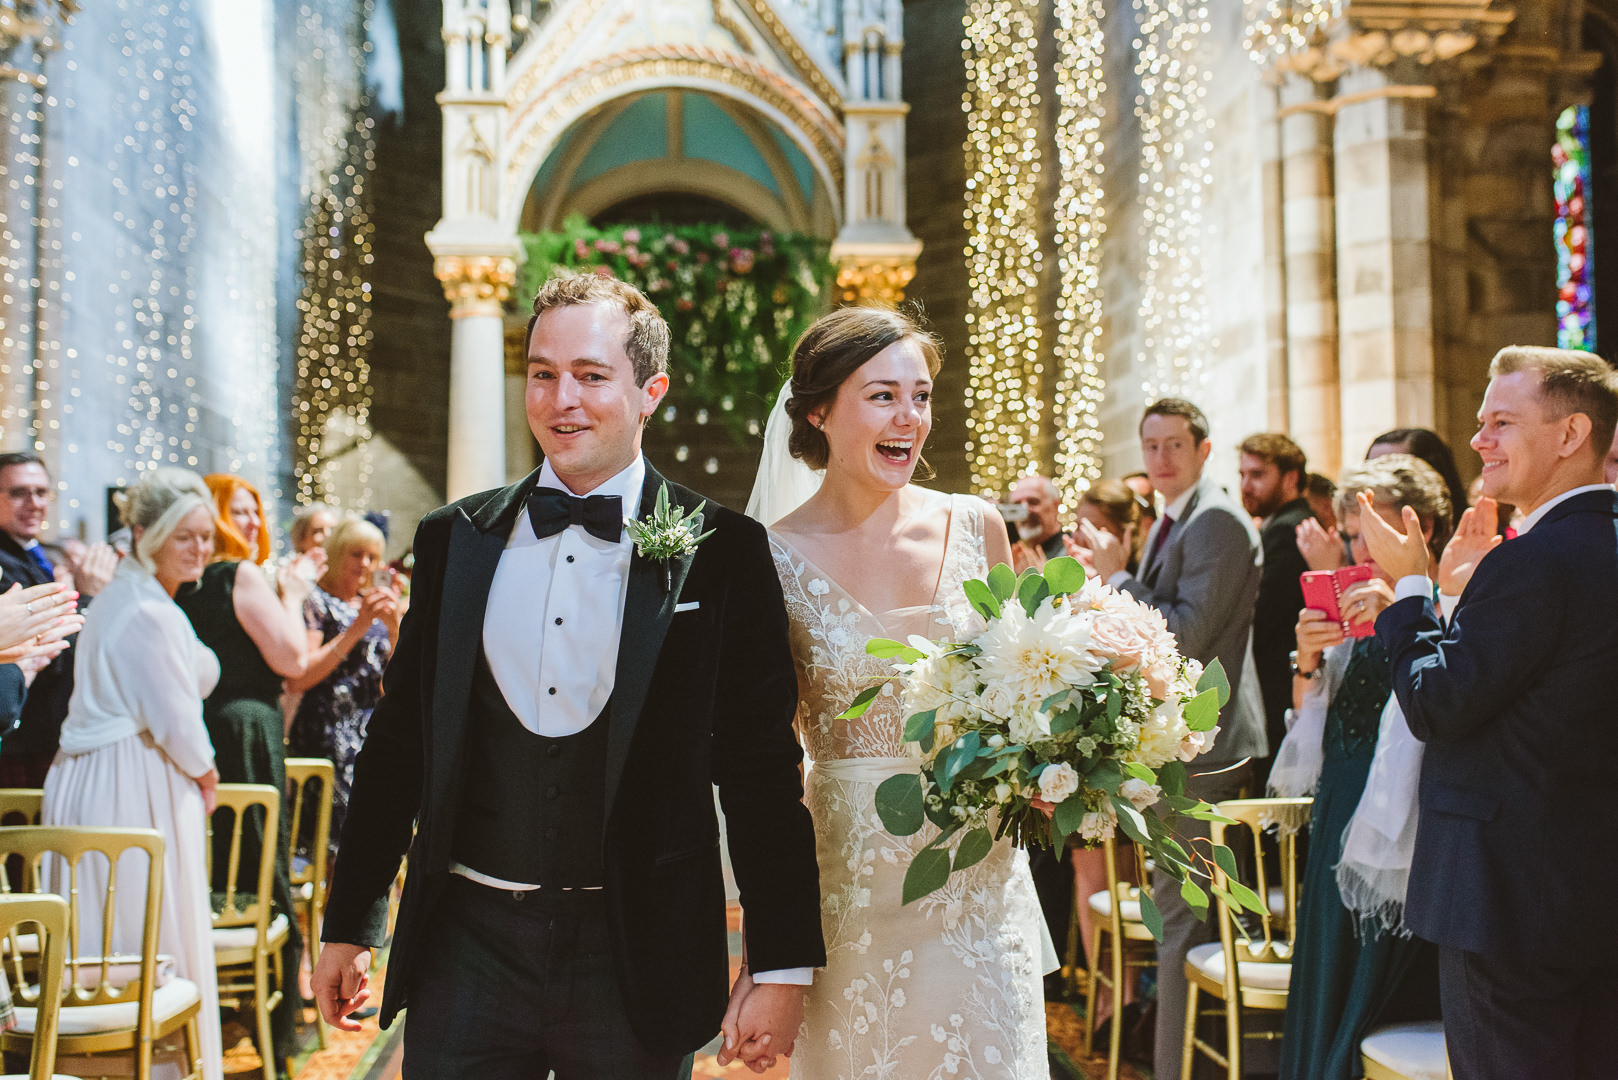 Mansfield Traquair Wedding - From my best wedding photos from 2019